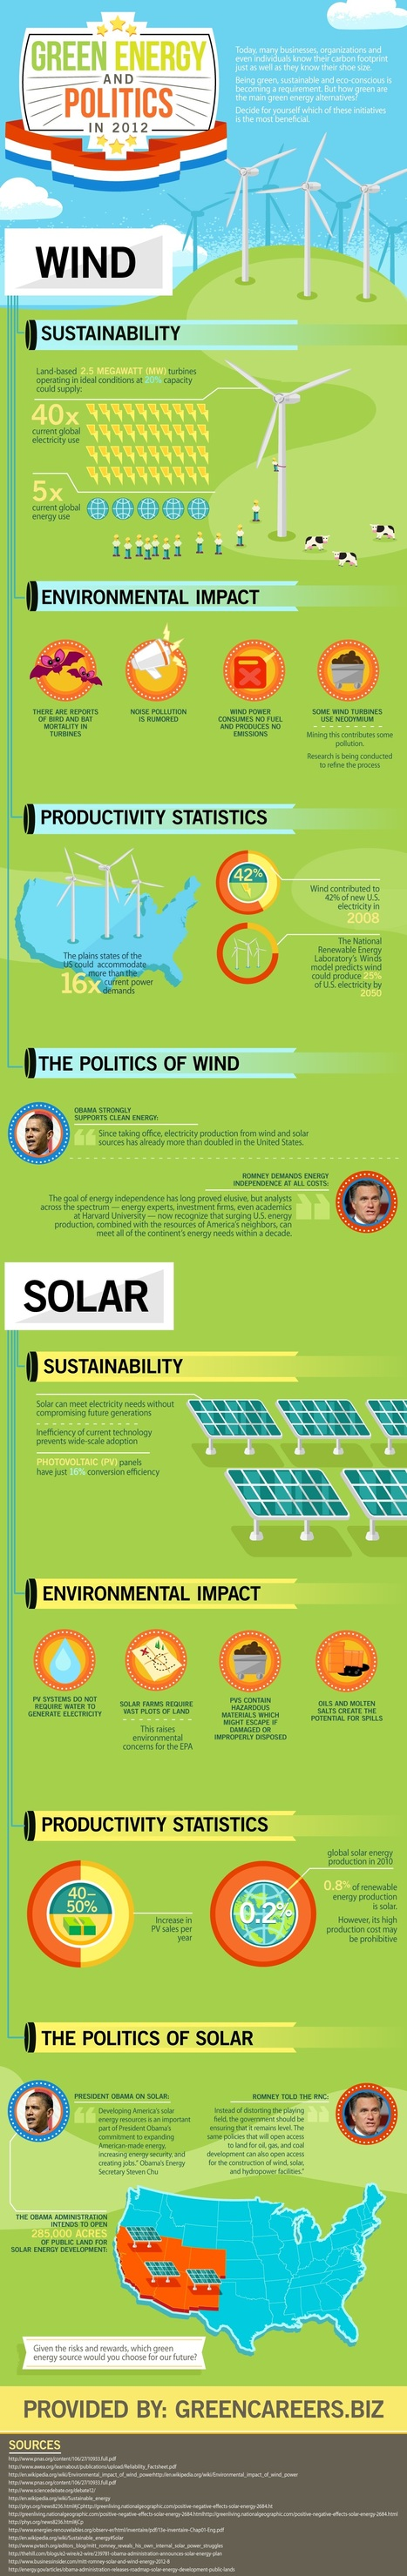 Green Energy and Politics in 2012 | Health promotion. Social marketing | Scoop.it